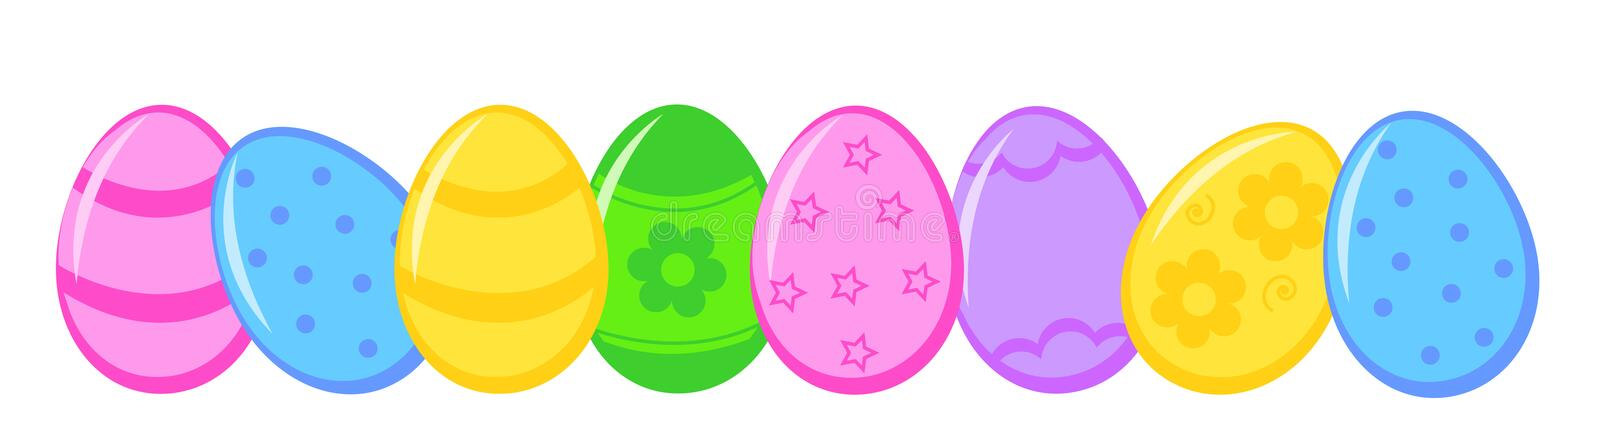 Easter eggs. Cute colorful easter eggs lined up in a row isolated on white background